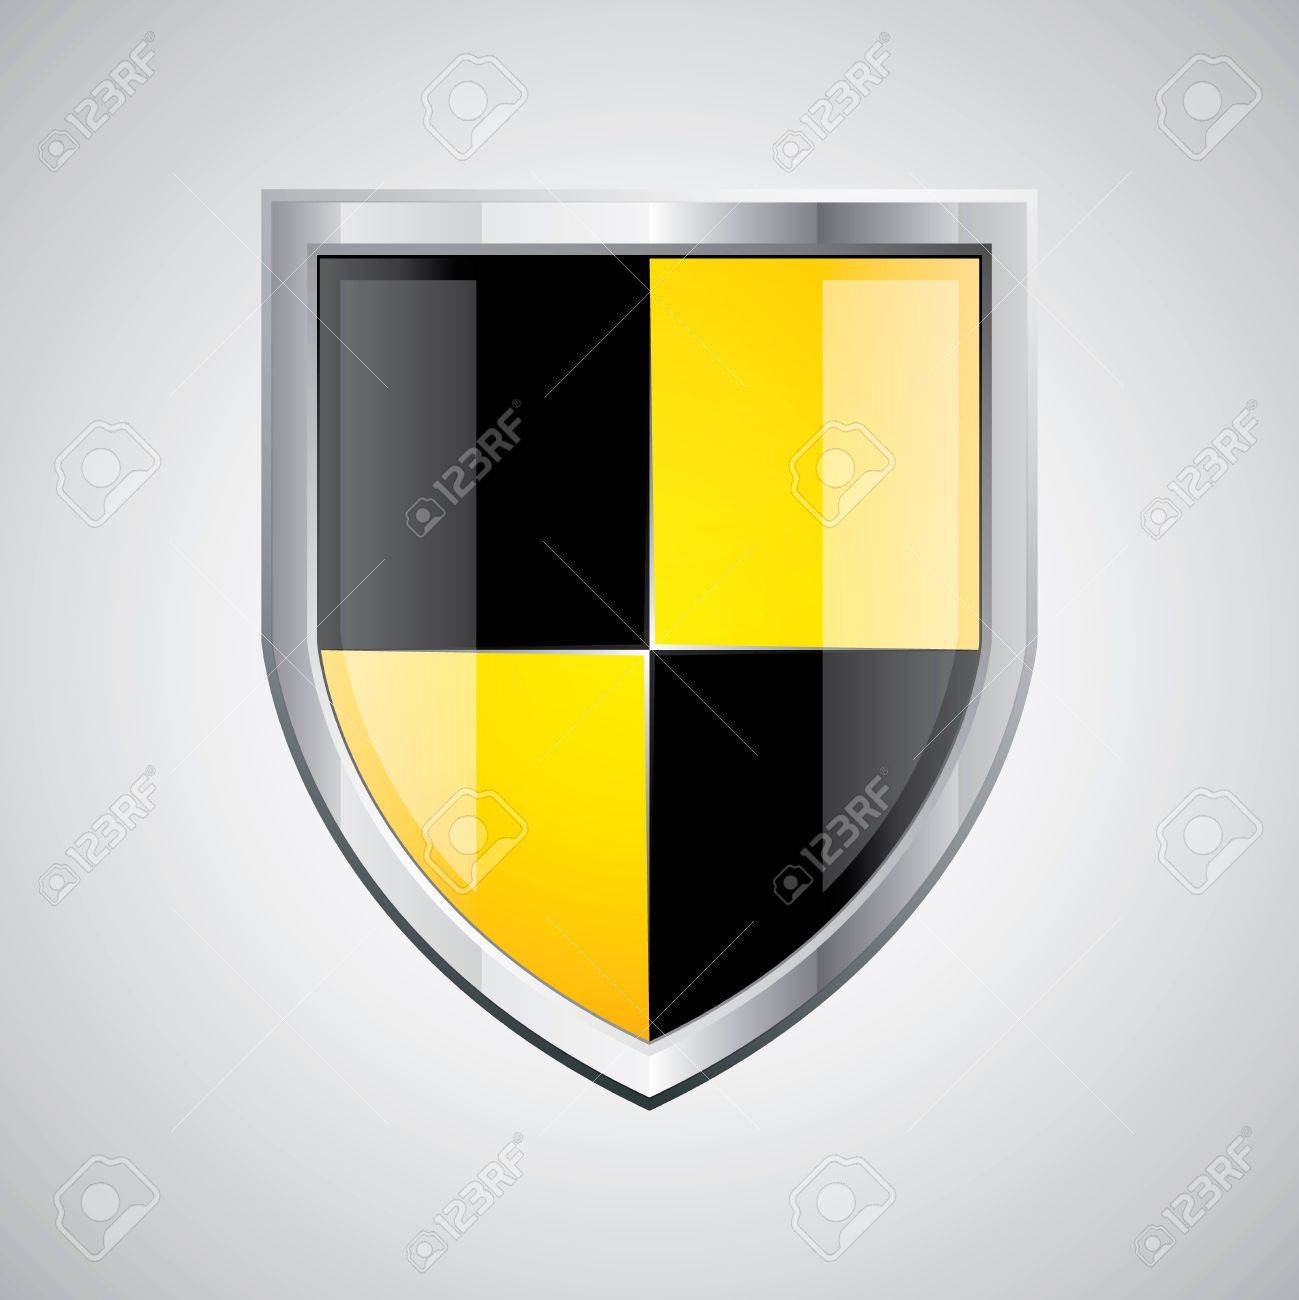 Glossy black and yellow shield emblem on silver background Stock Vector - 11088564